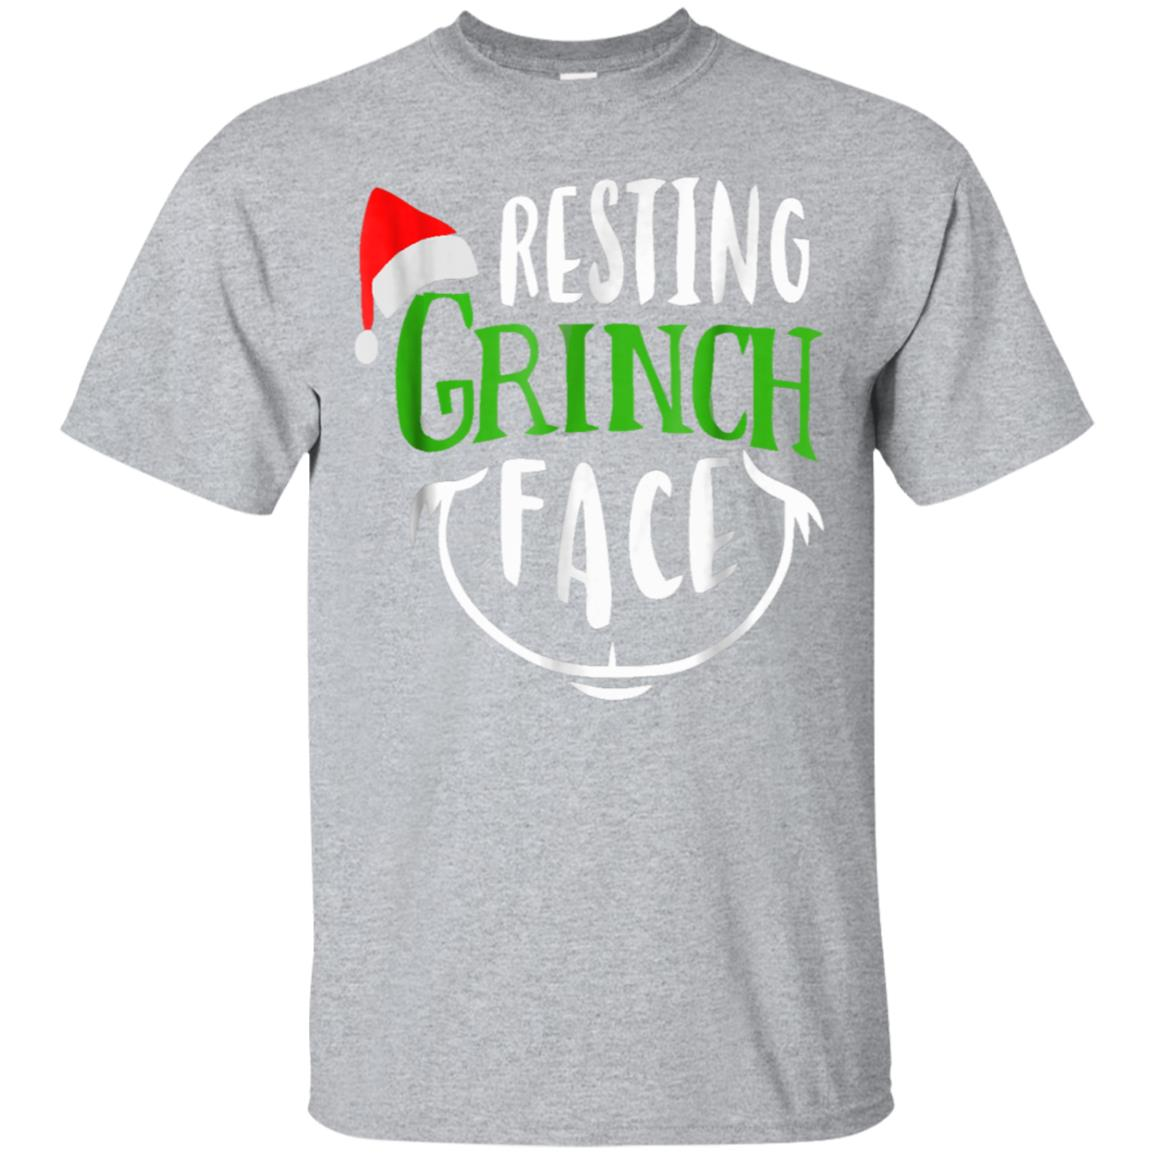 Resting Grinches Face With Santa Hat Christmas Gift T-shirt 99promocode